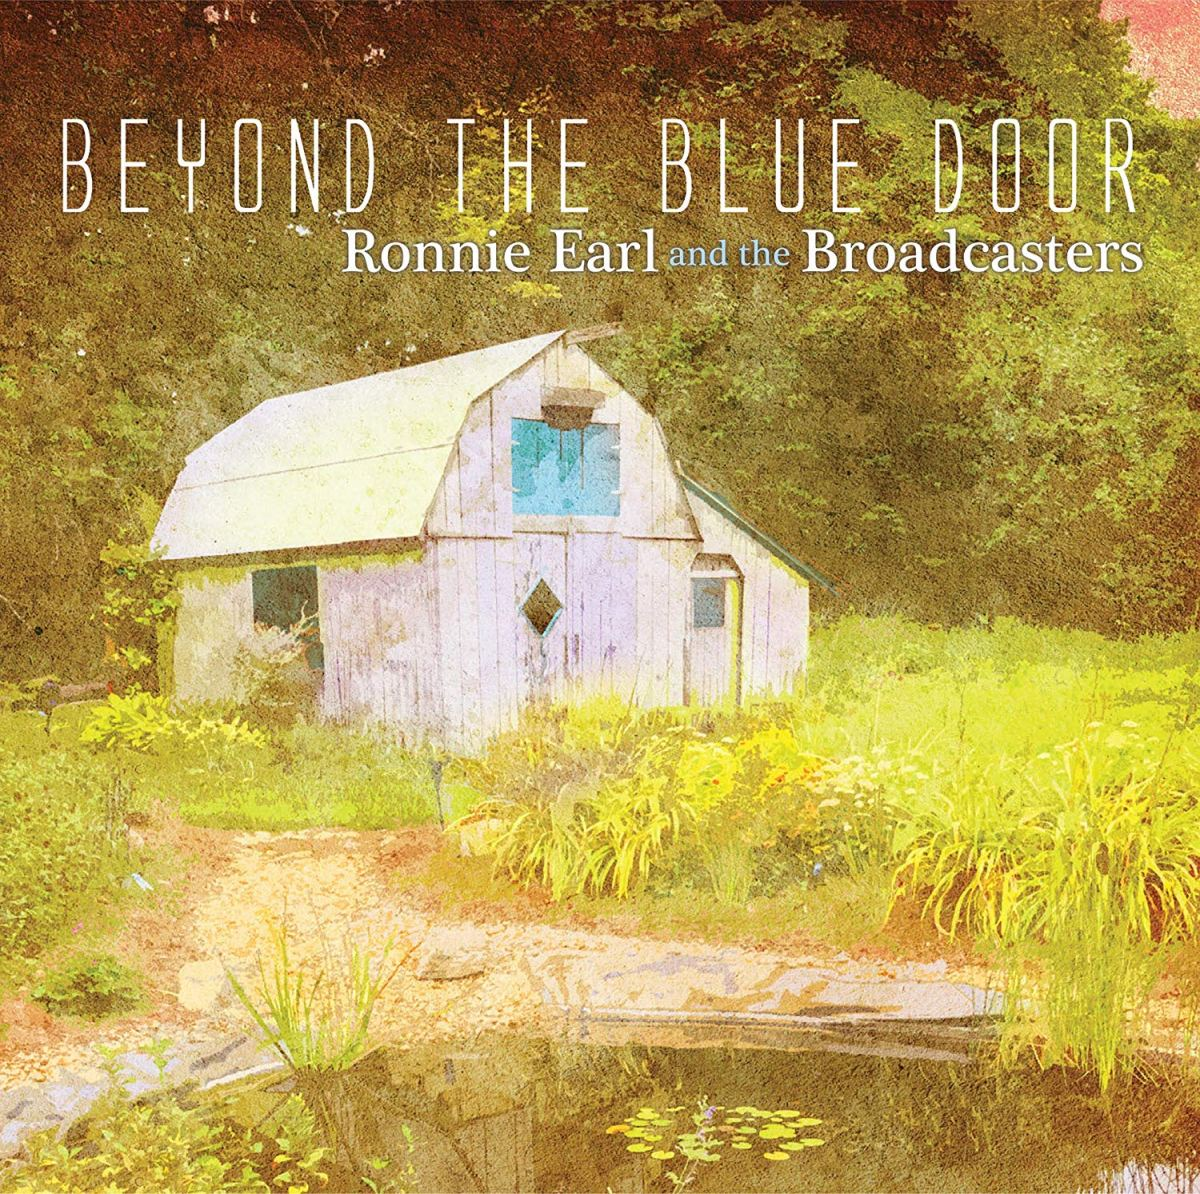 ¿Qué Estás Escuchando? Ronnie-Earl-And-The-Broadcasters-Beyond-The-Blue-Door